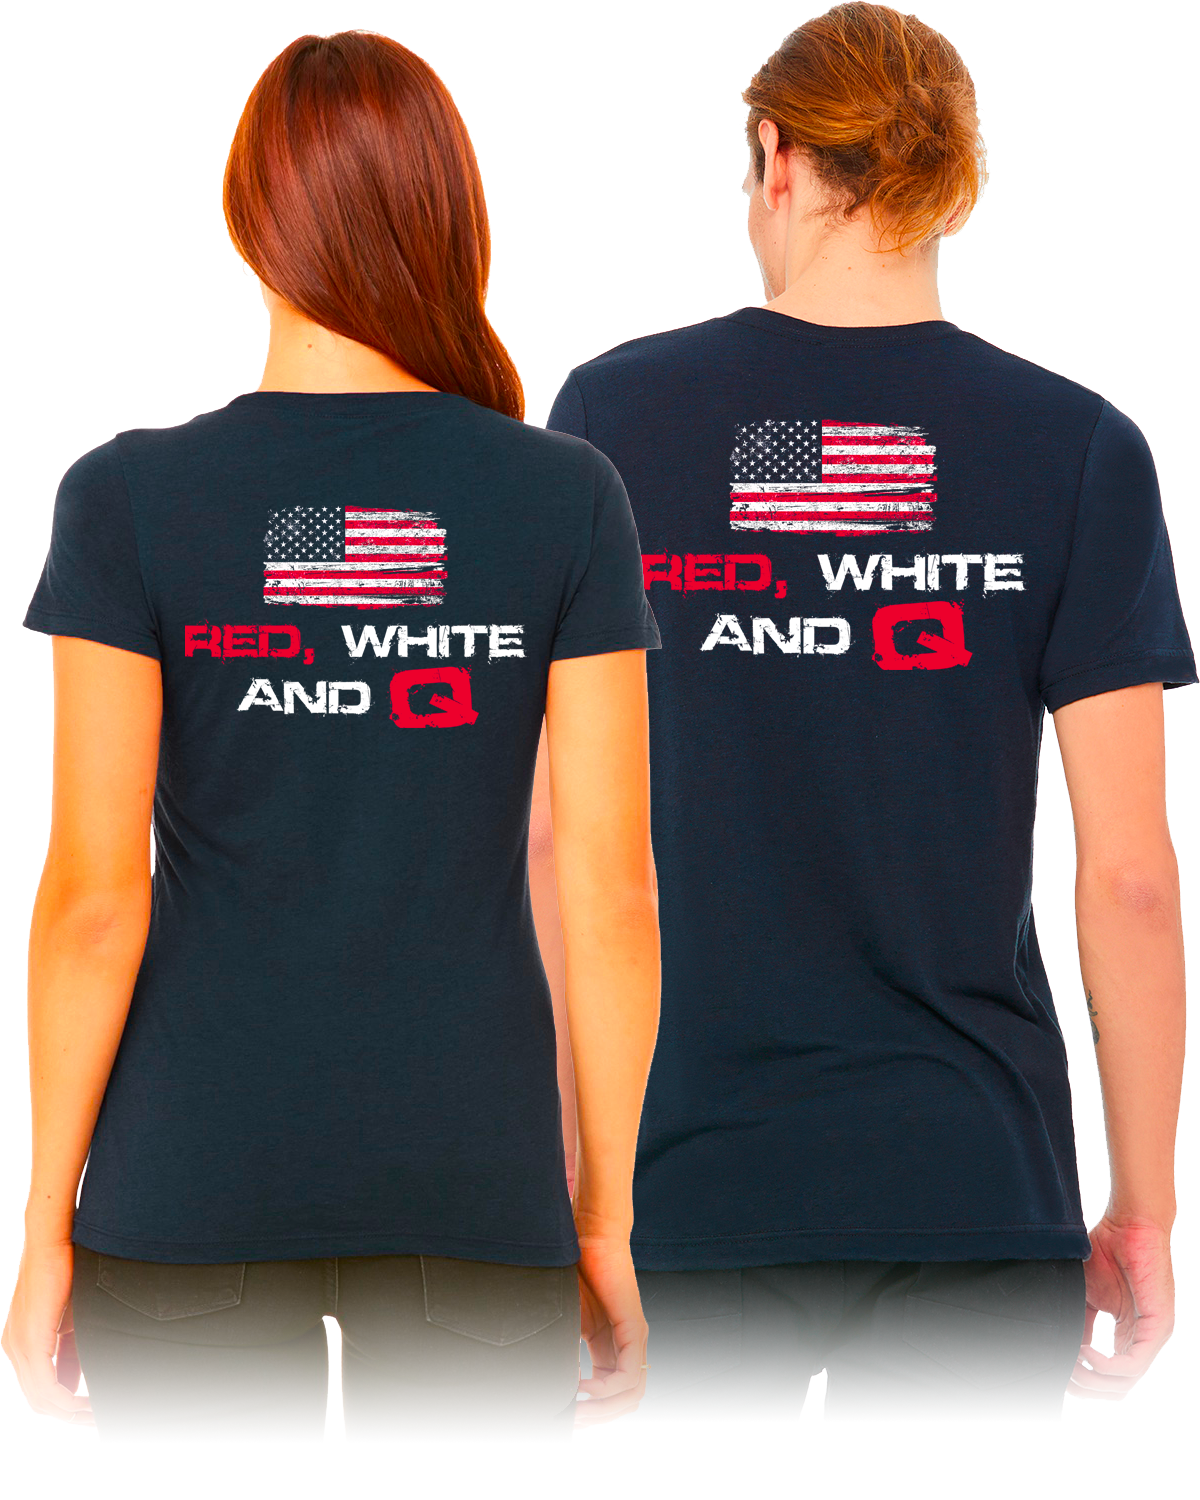 women's 'red white and q' front shirt